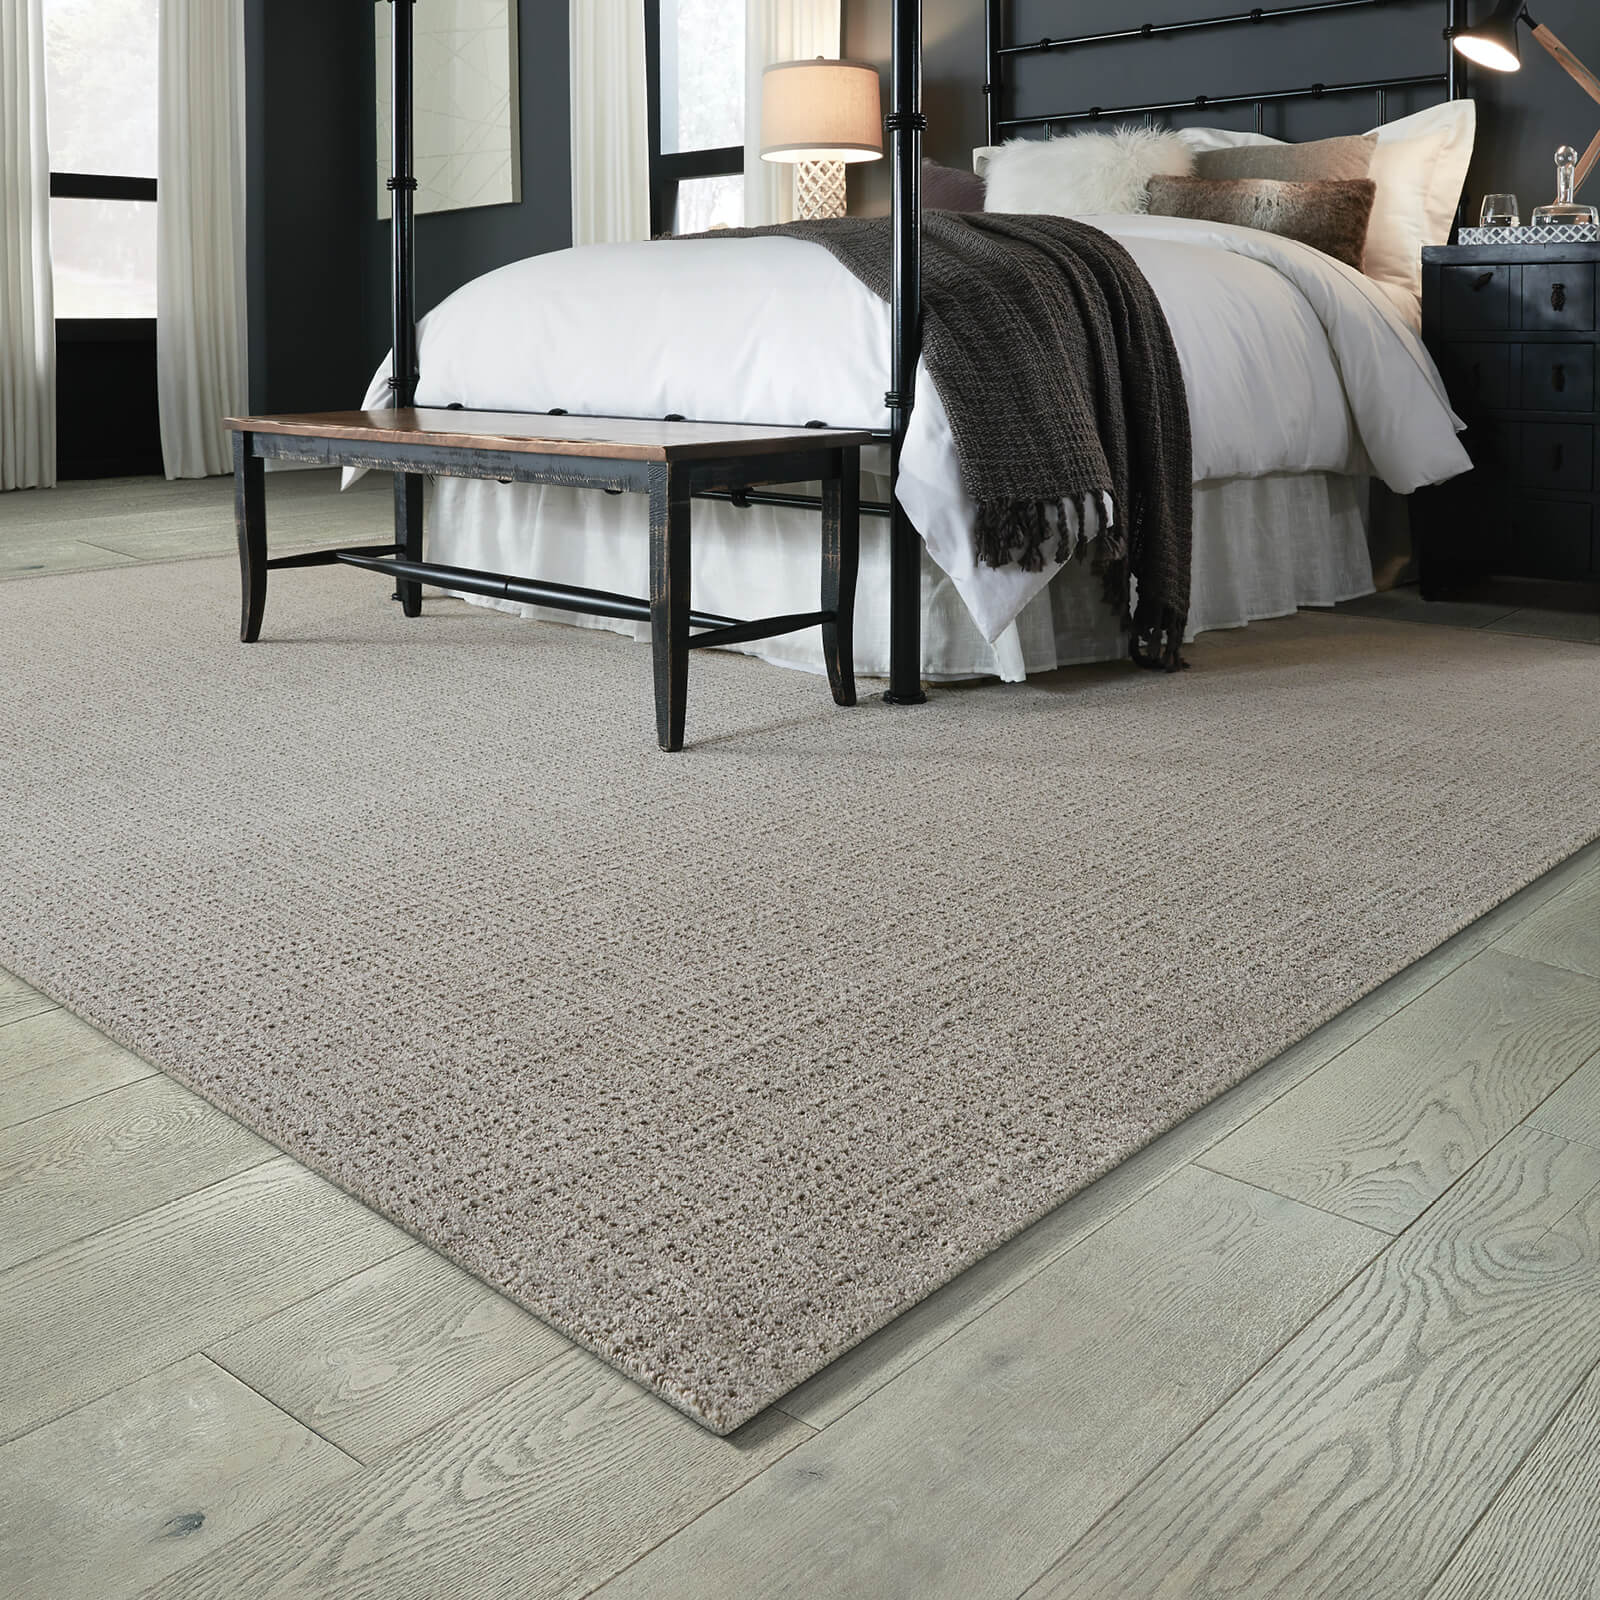 Bedroom carpet | Price Flooring